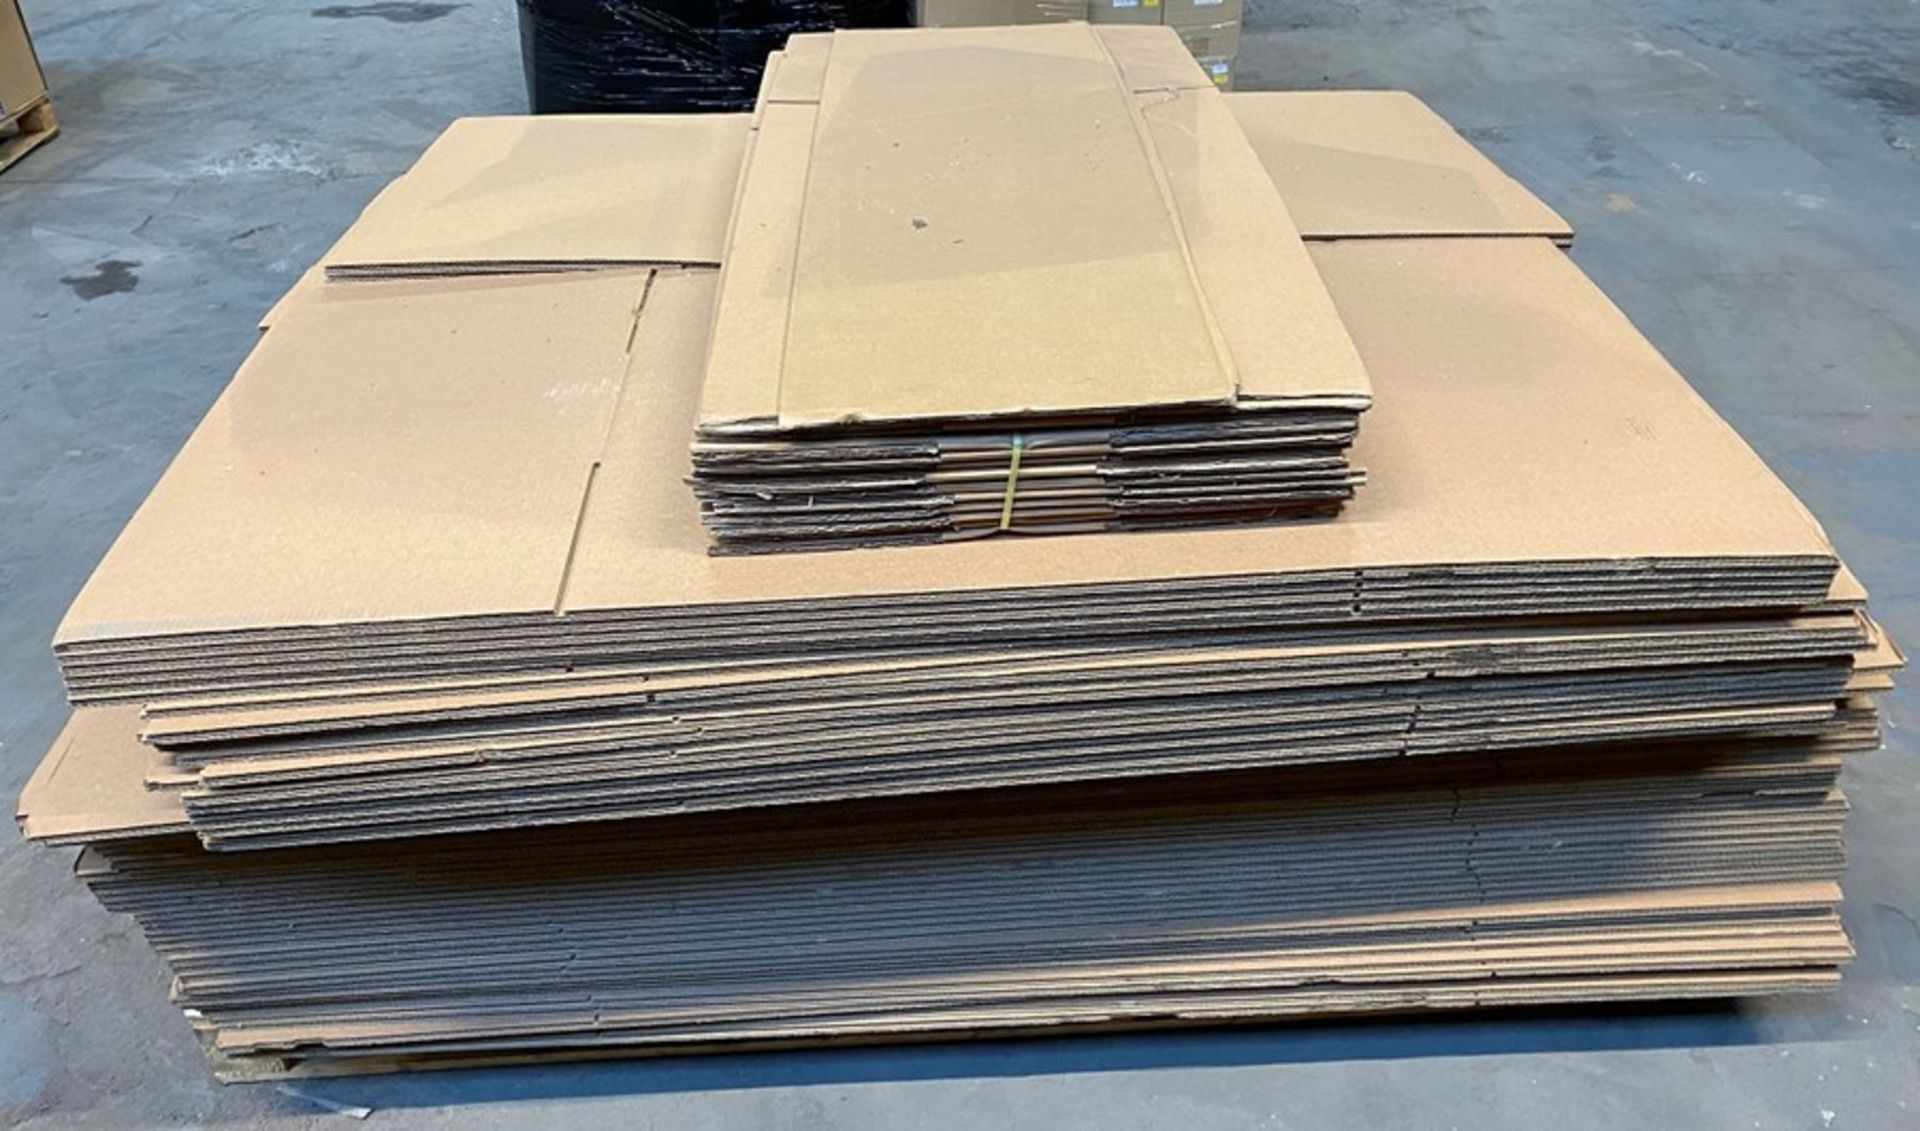 Lot 41 - 1 LOT TO CONTAIN ASSORTED CARDBOARD AND CARDBOARD BOXES / COLOUR, SIZES AND CONDITIONS MAY VARY (